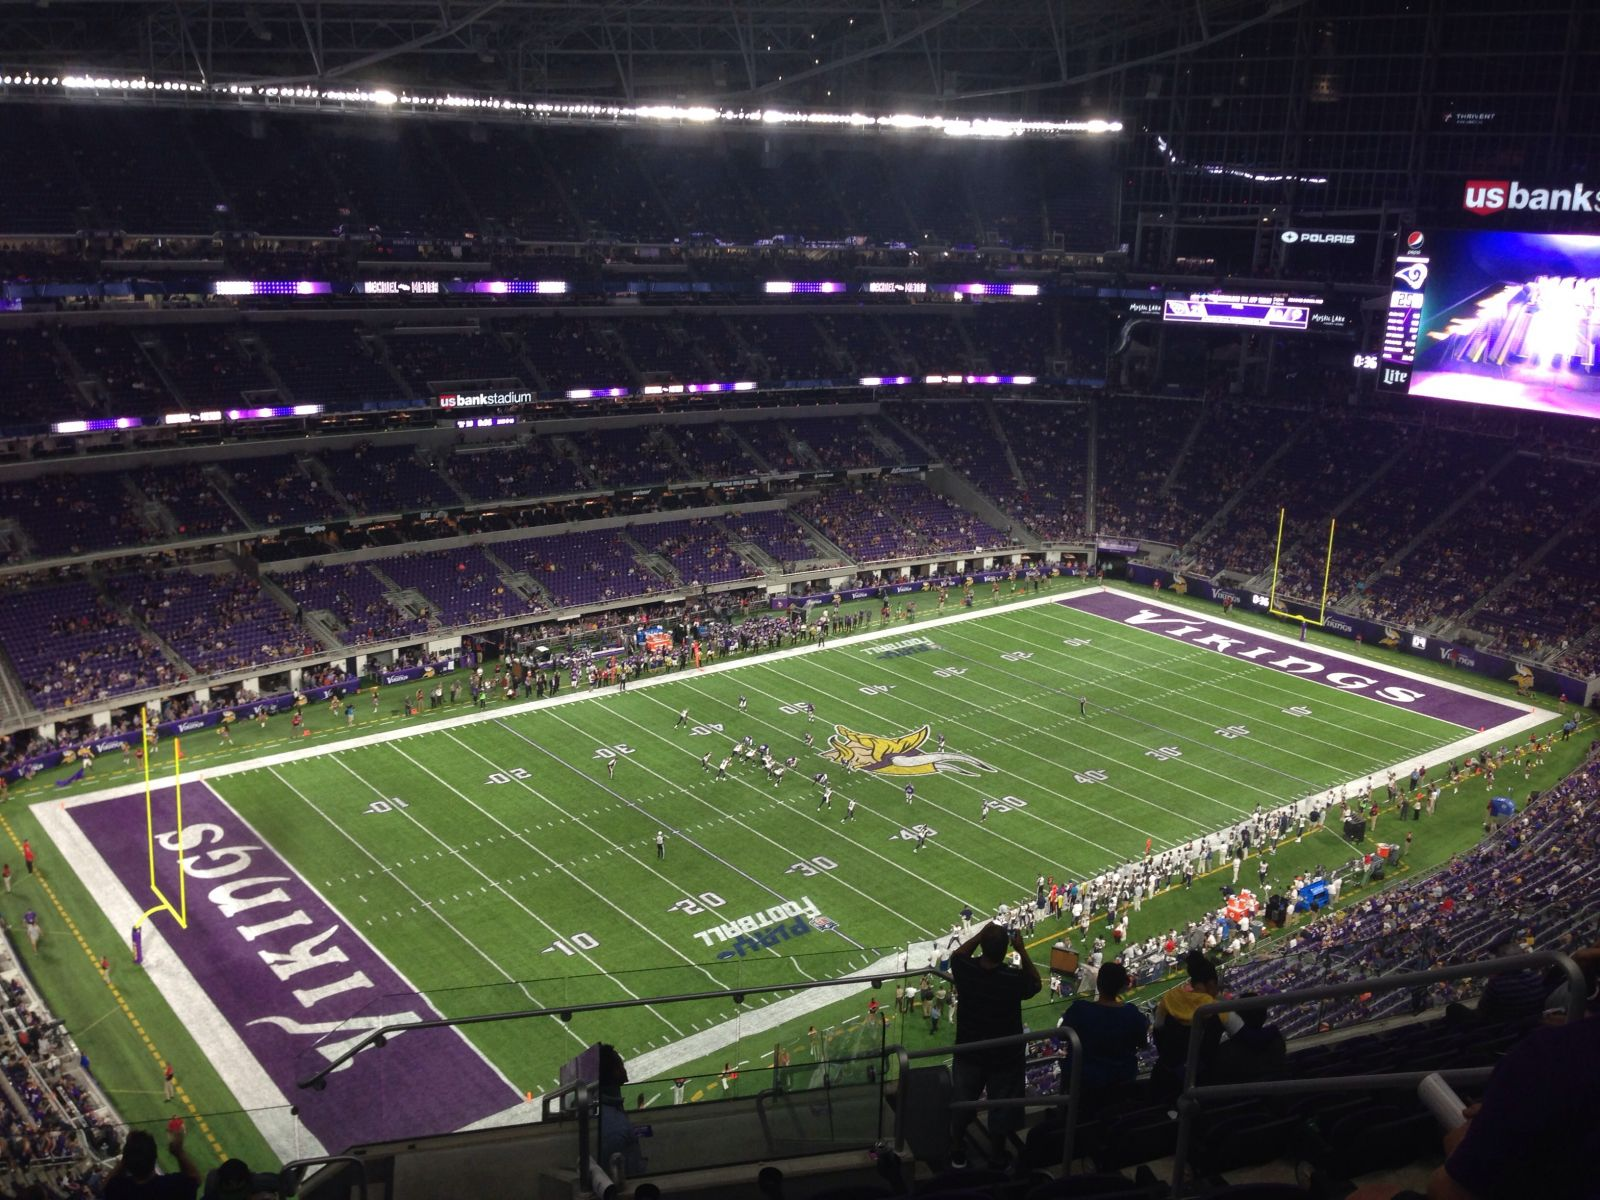 Minnesota Vikings Seat View for U.S. Bank Stadium Section 318, Row 11